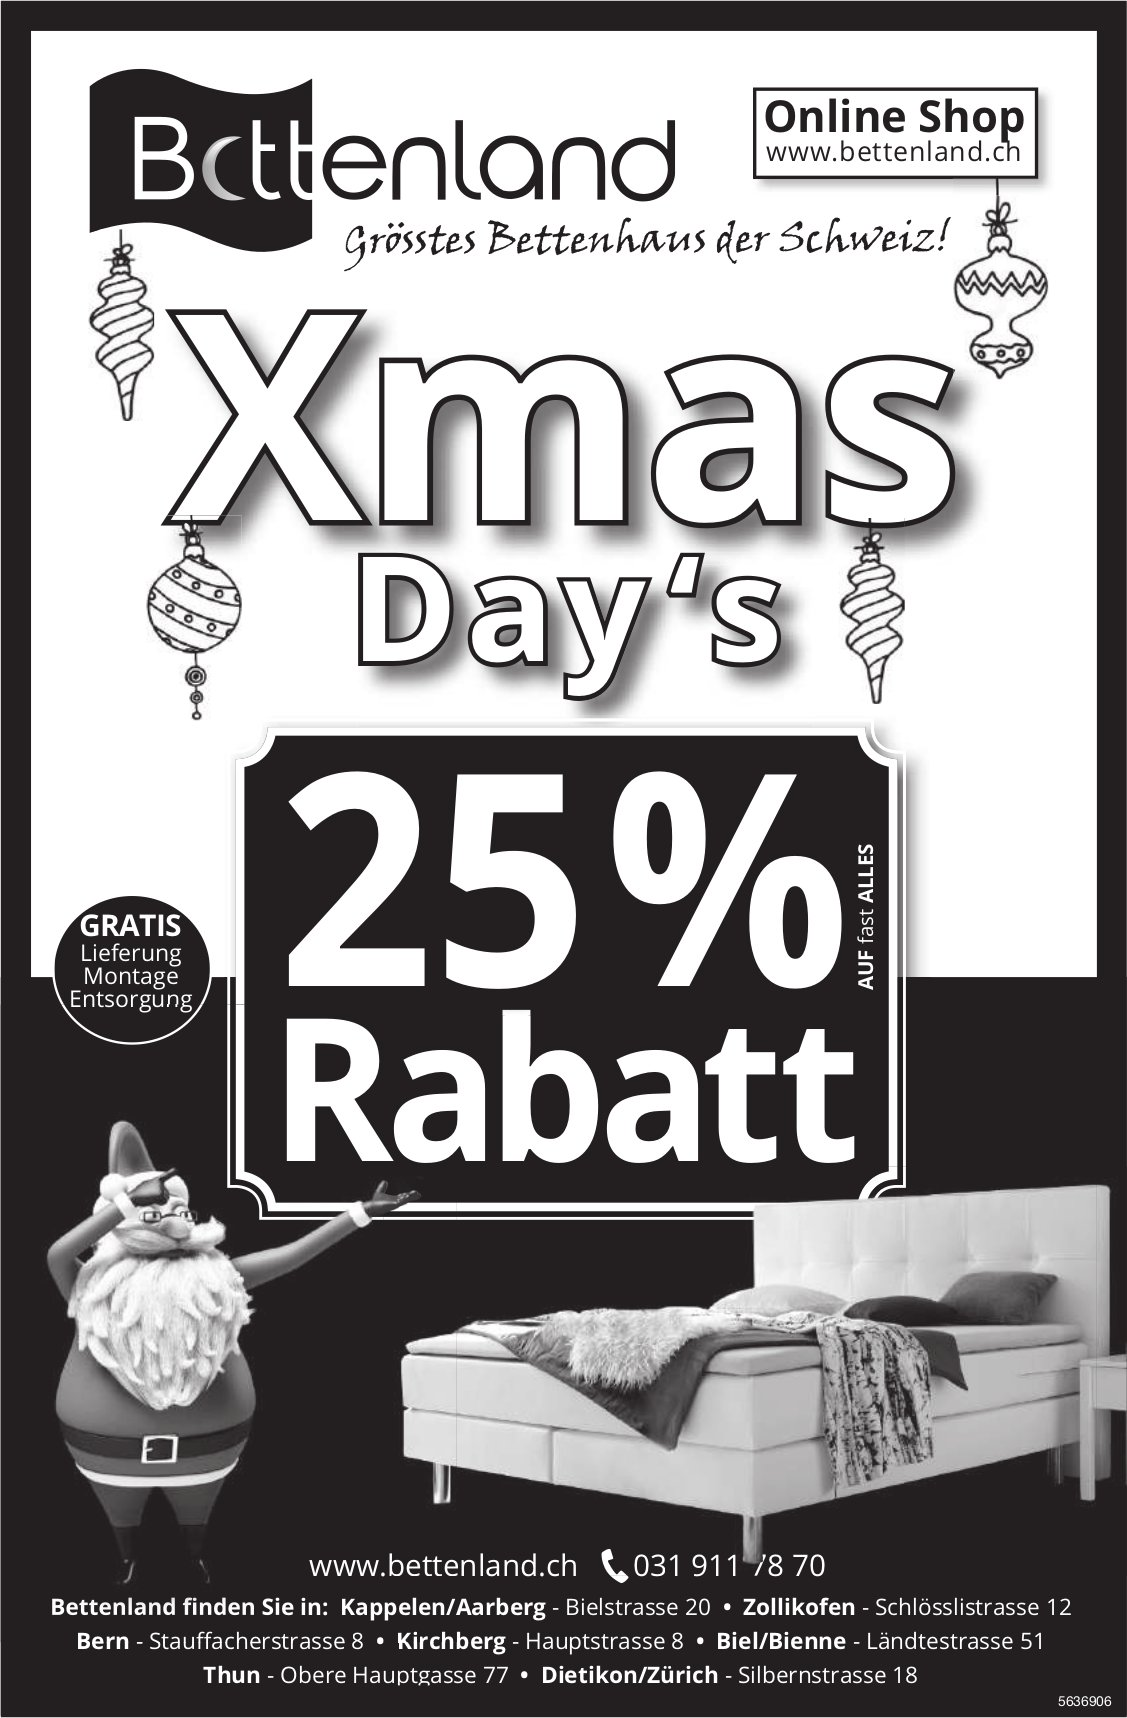 Bettenland - Xmas Day's - 25% Rabatt